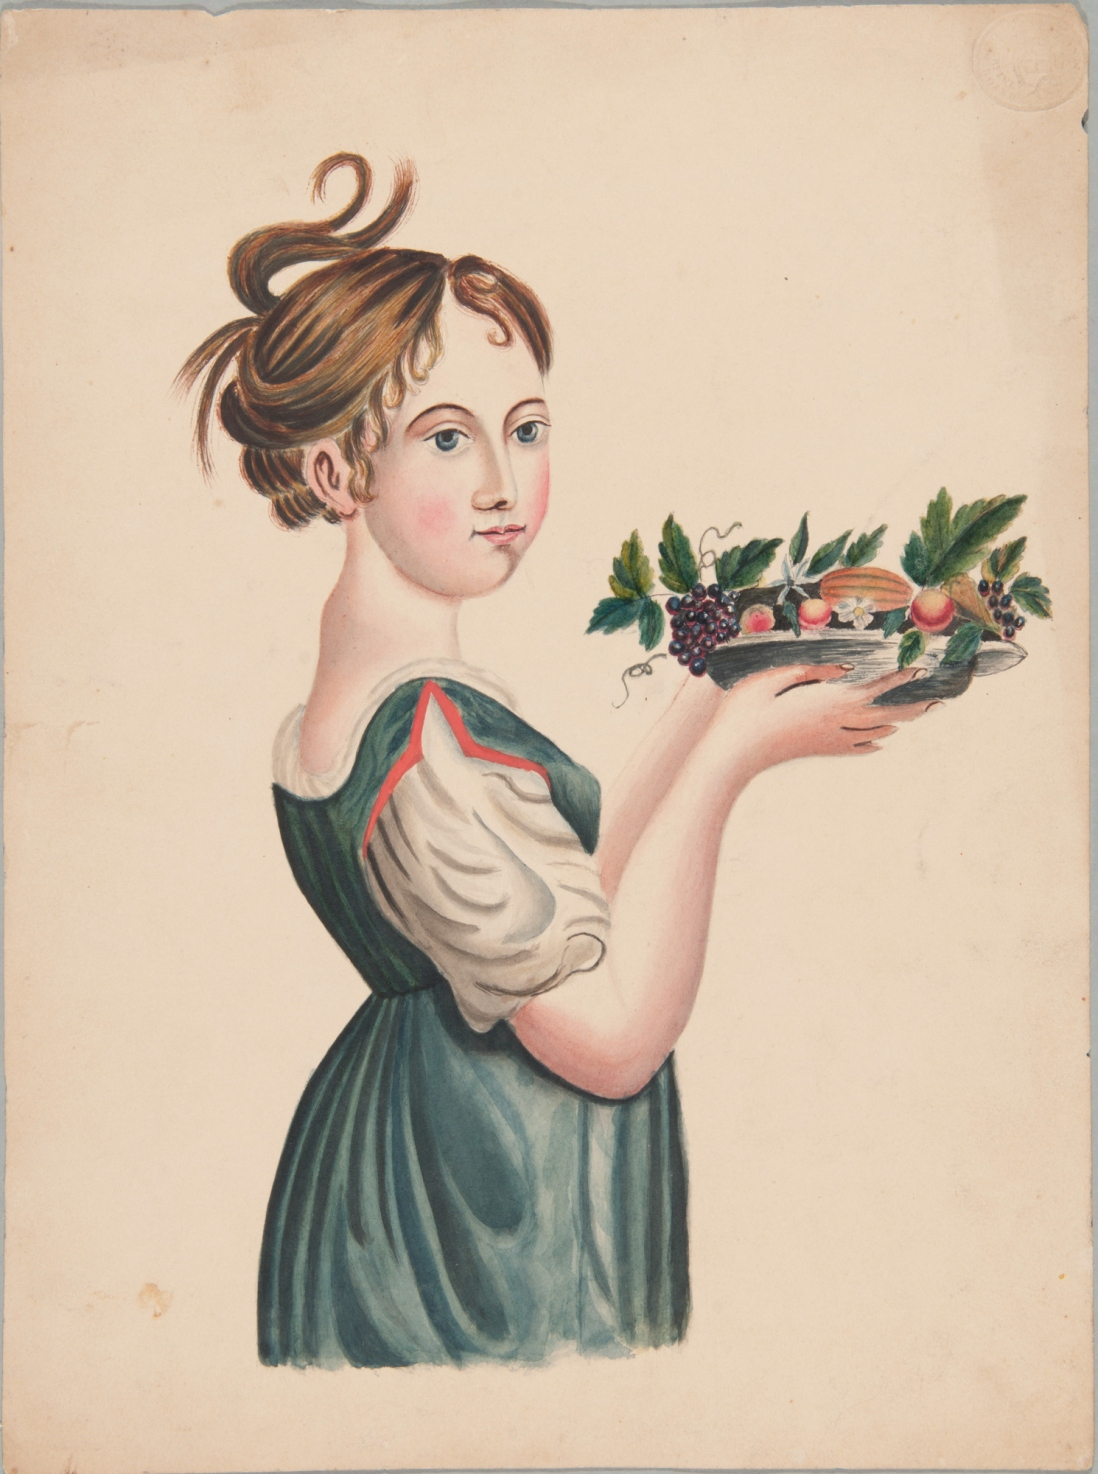 A girl holding a plate of fruit